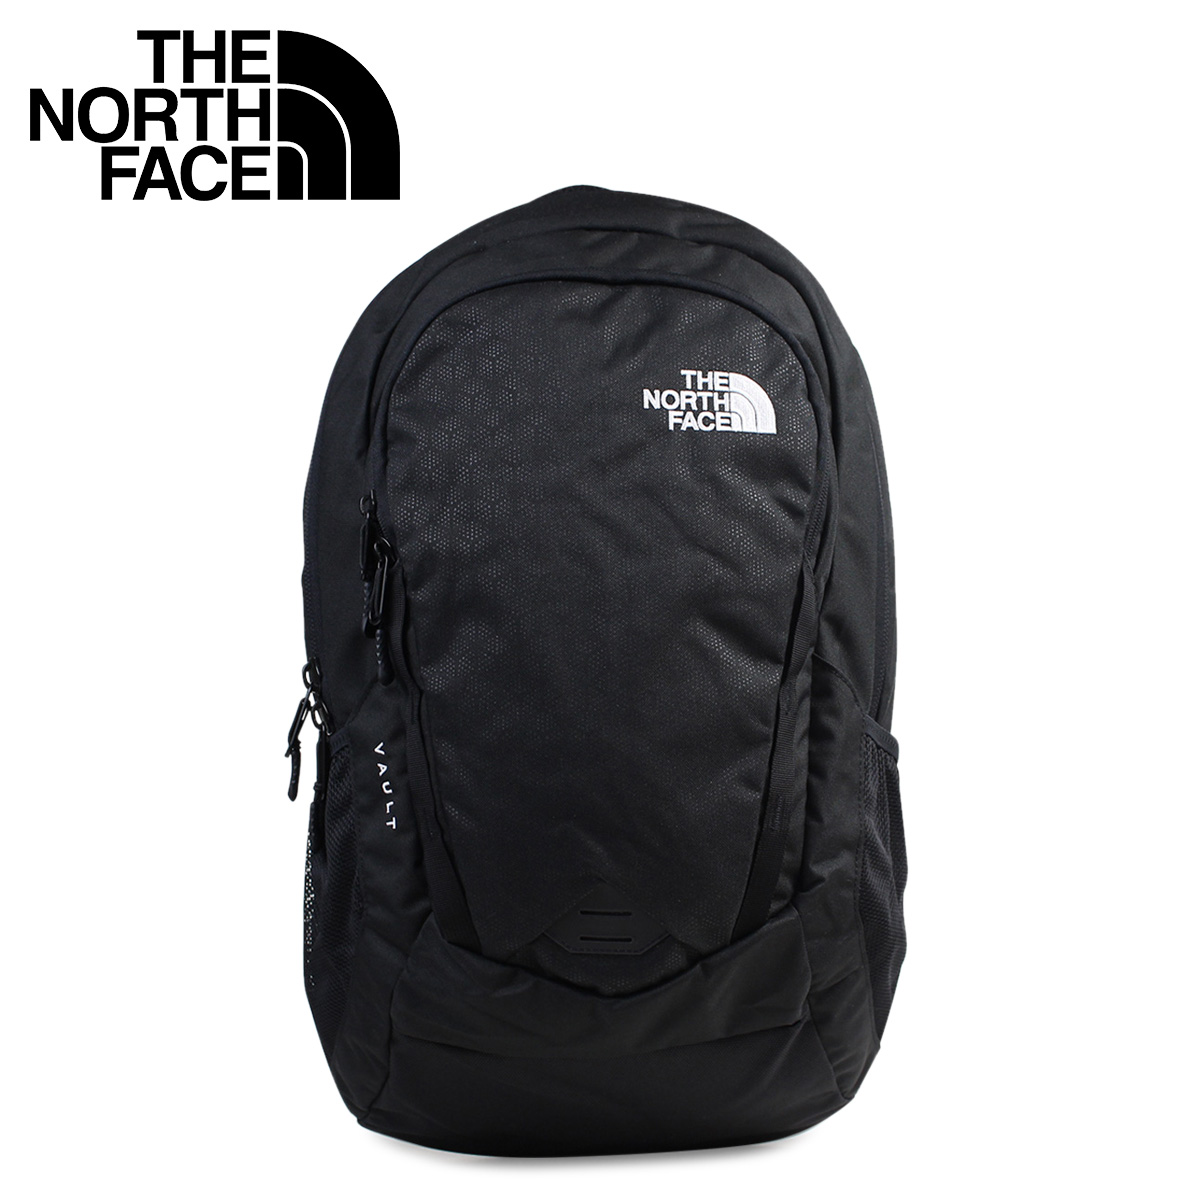 sneak online shop rakuten global market up to 800 yen off coupon north face rucksack the. Black Bedroom Furniture Sets. Home Design Ideas